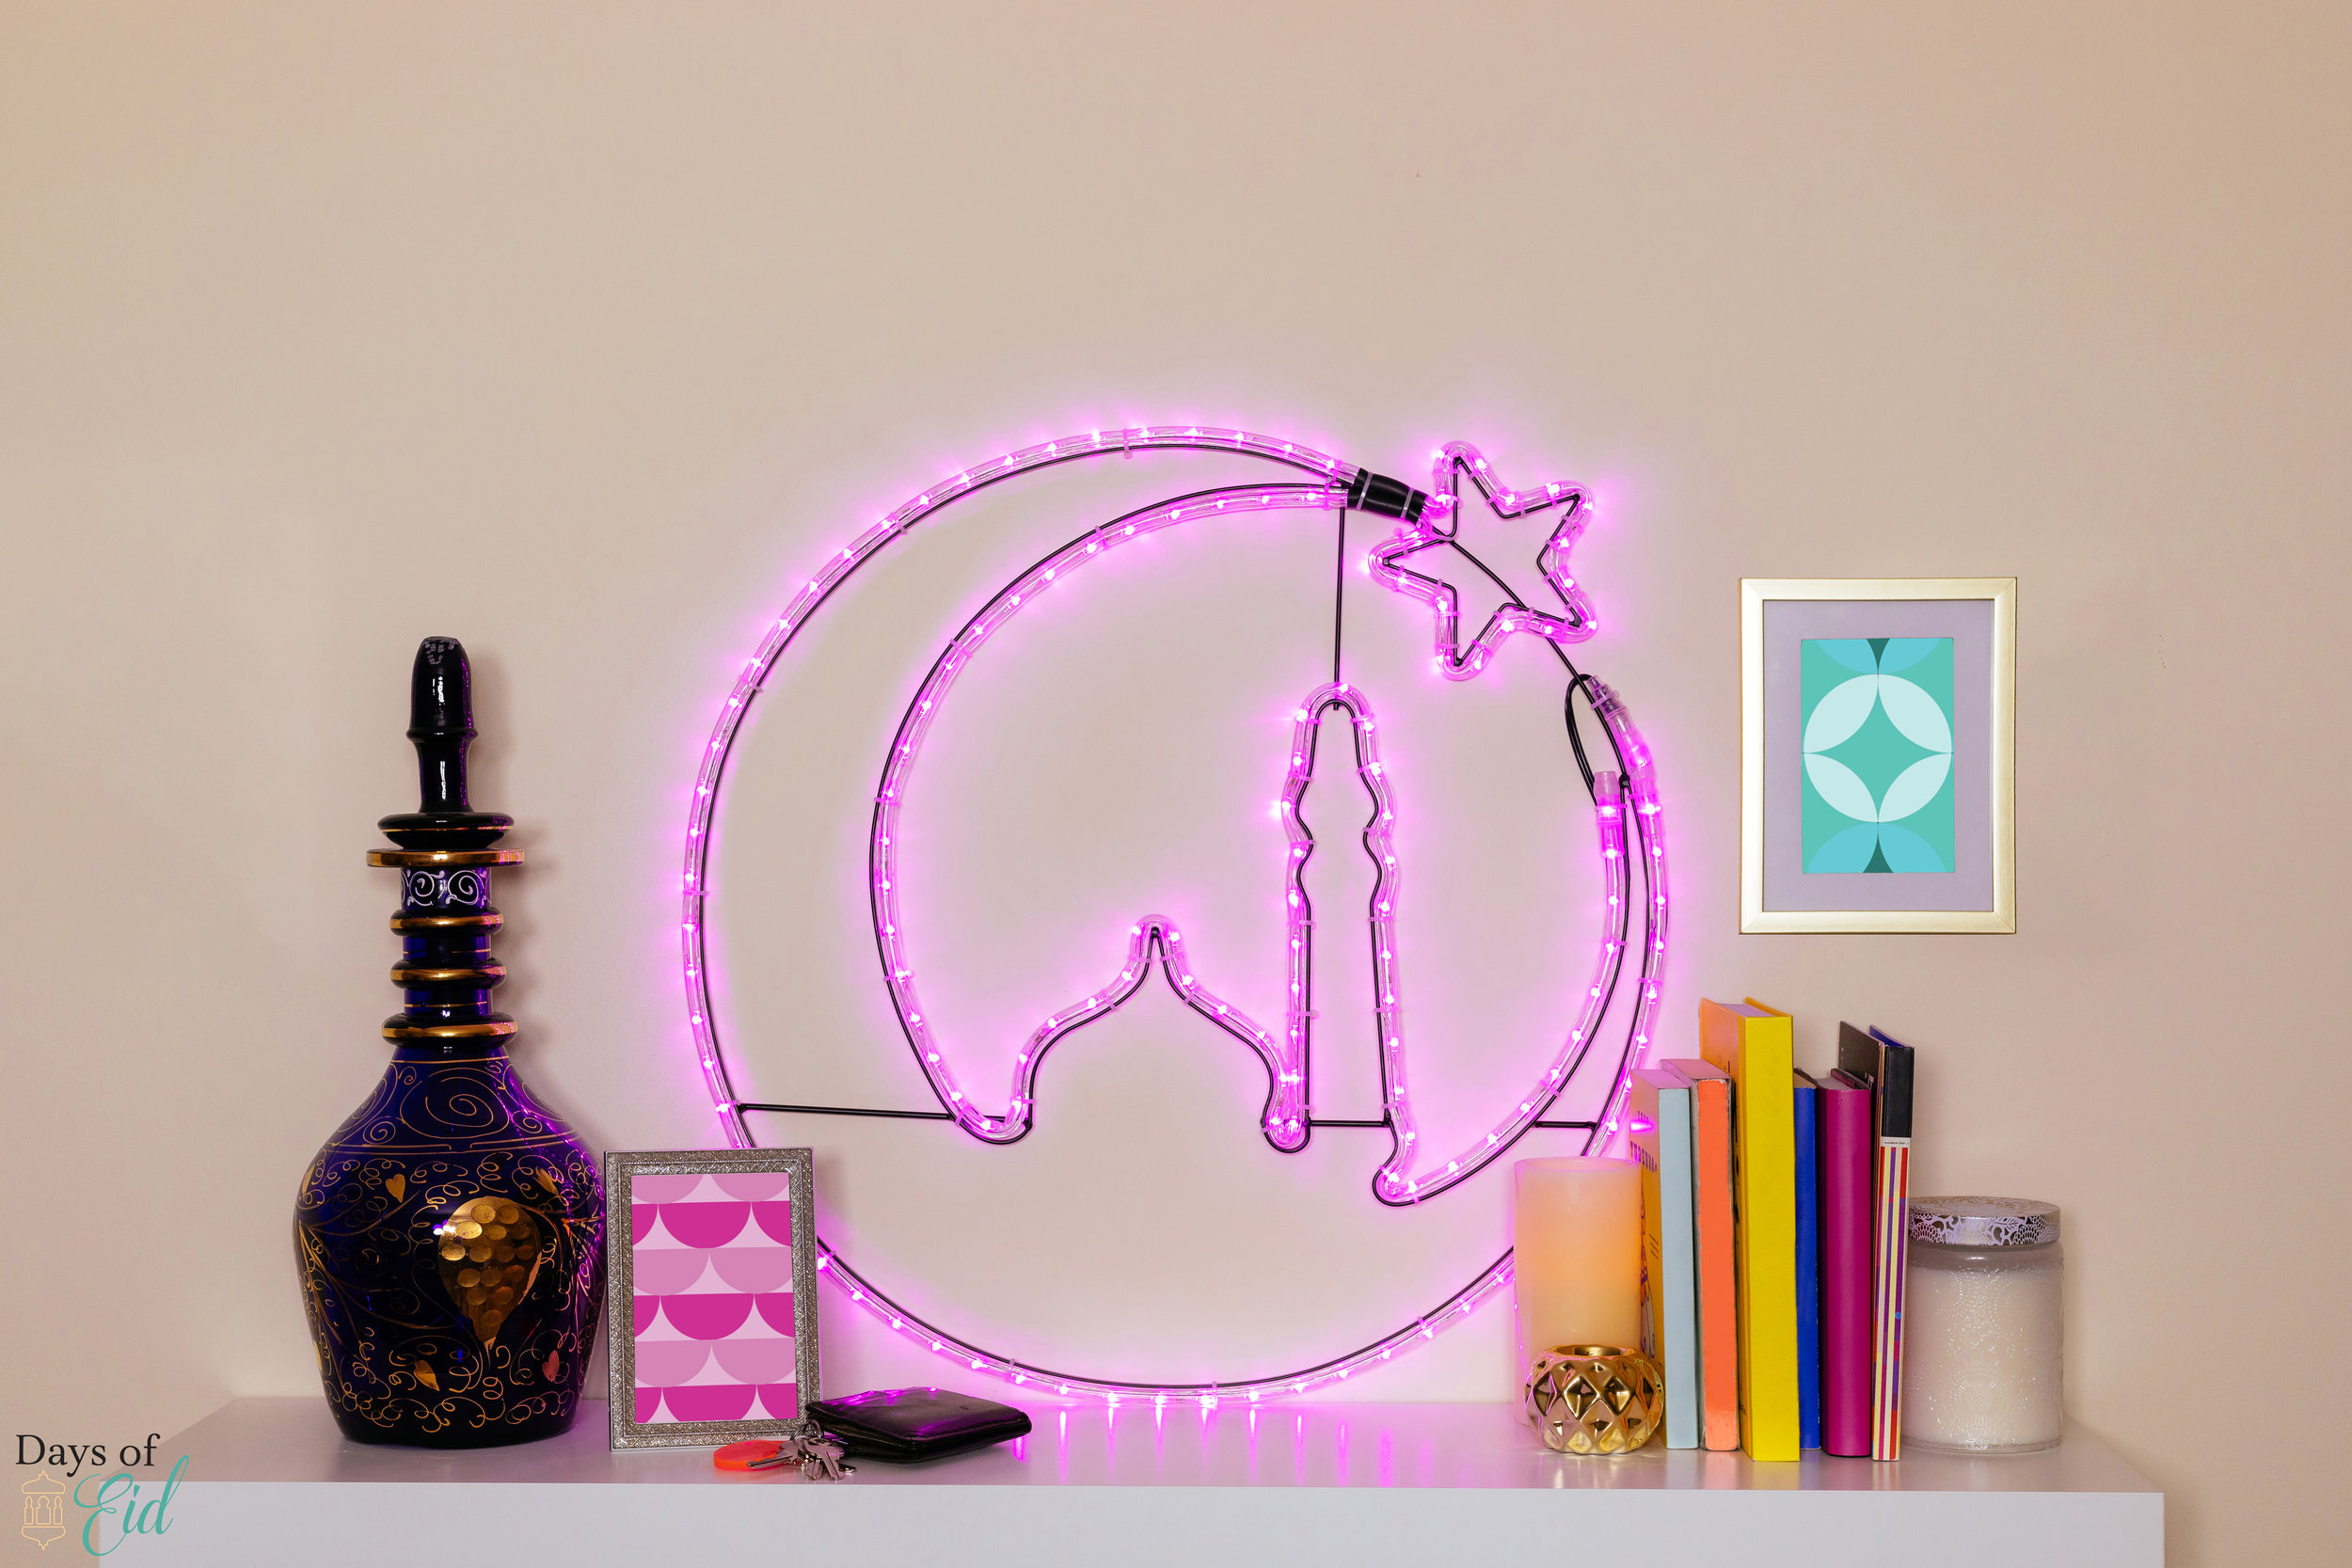 Ramadan-Decor-Unique-Decorations-Days-of-Eid-Neon-Light-1.jpg